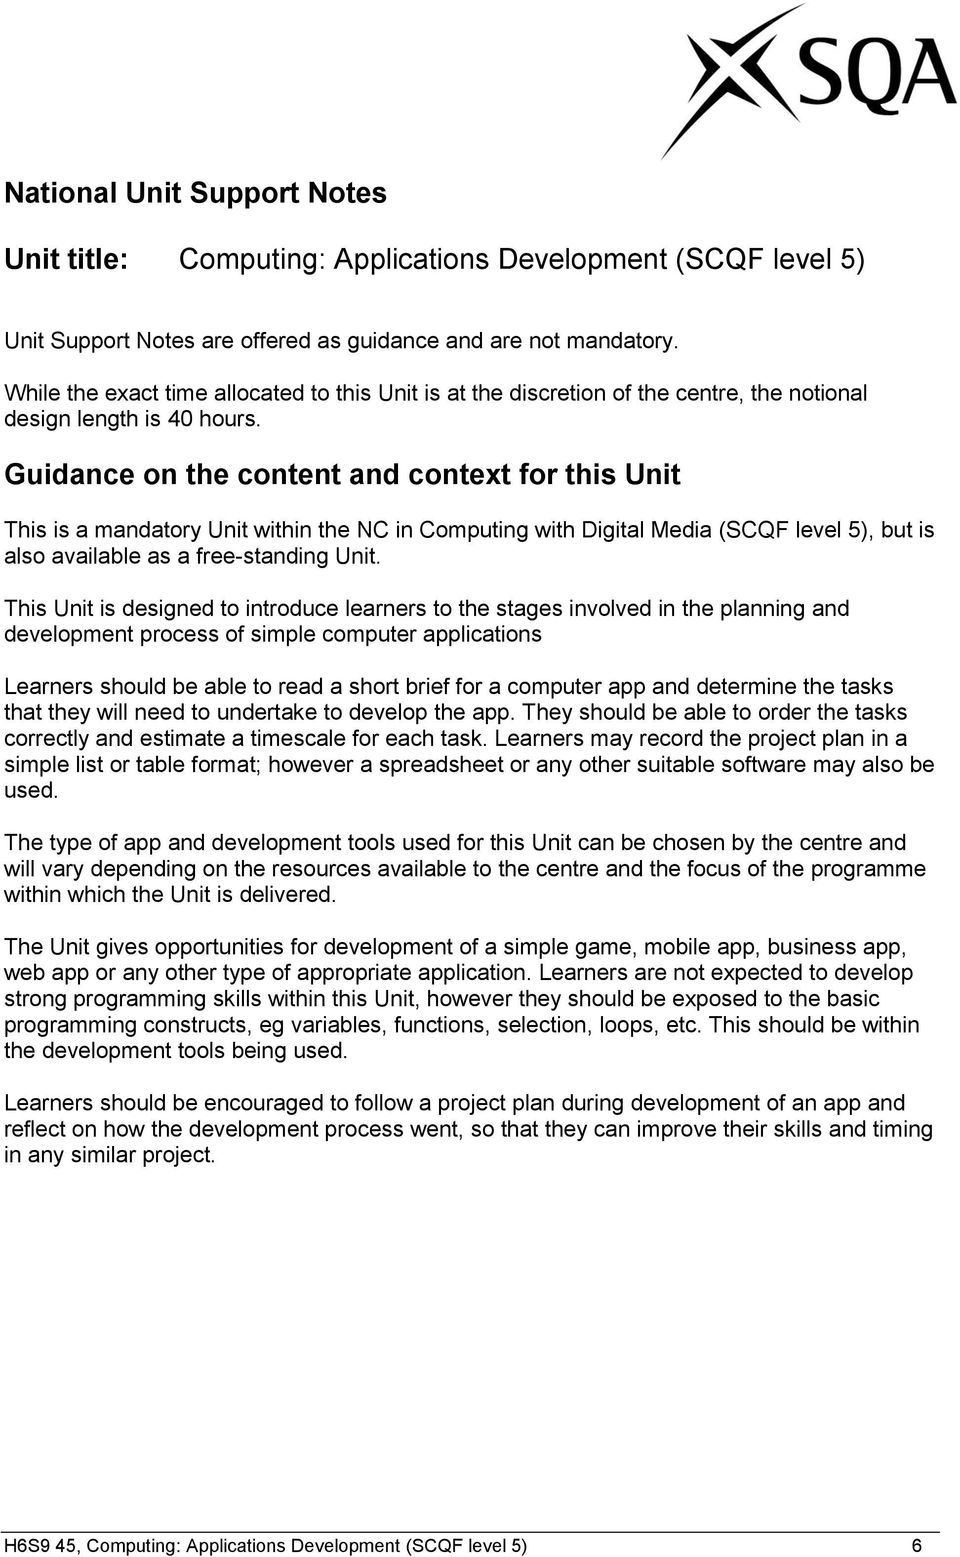 Guidance on the content and context for this Unit This is a mandatory Unit within the NC in Computing with Digital Media (SCQF level 5), but is also available as a free-standing Unit.